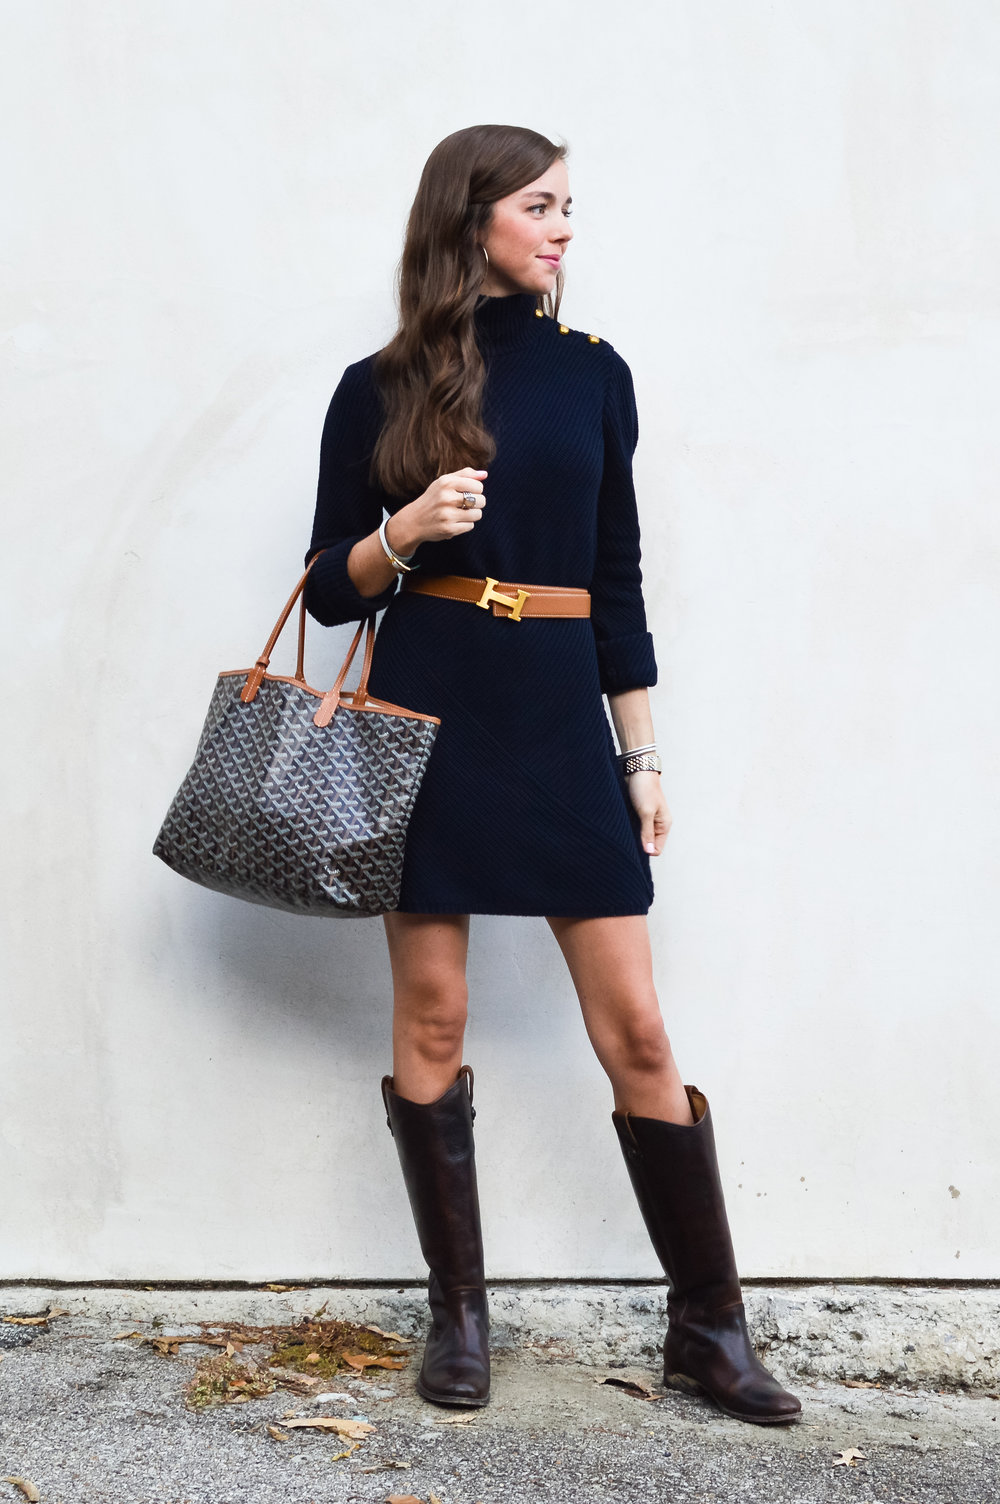 fashion blogger lcb style tory burch sweater dress frye boots barbour beadnell jacket  (23 of 43).jpg